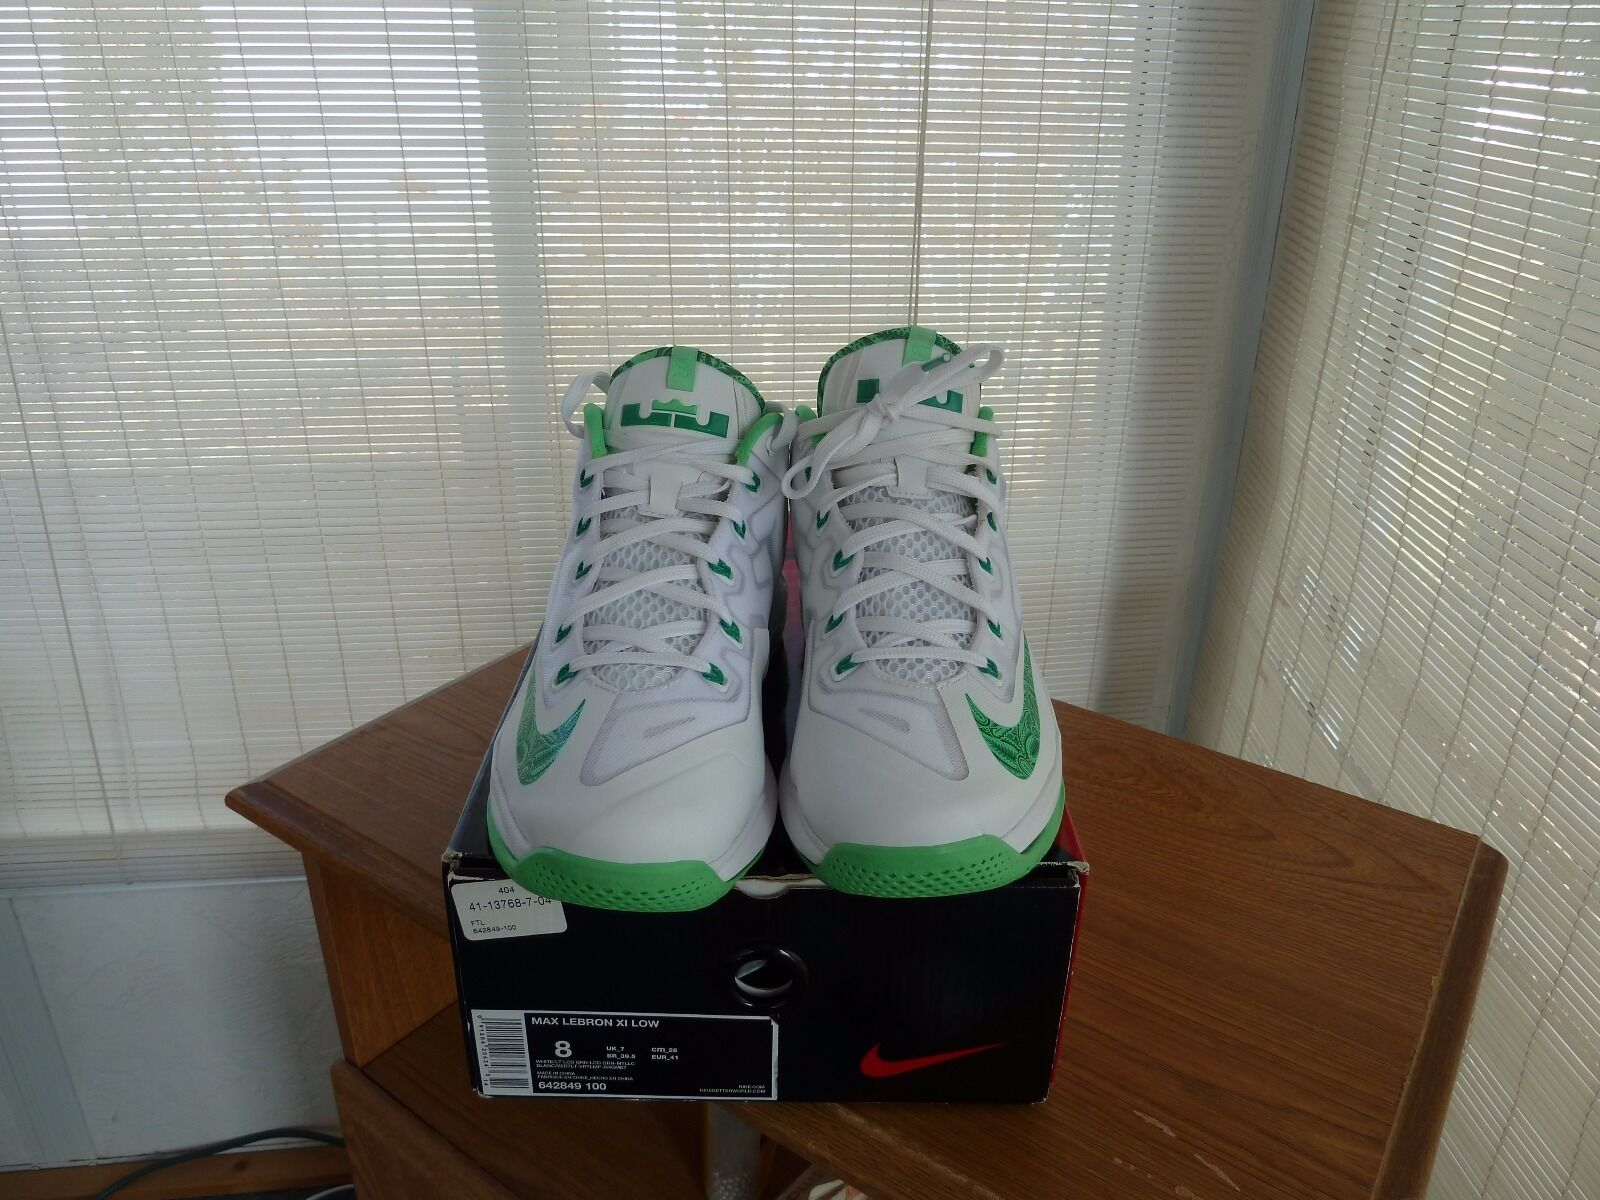 New Men's NIKE Lebron 11 Low Easter  in box size 8 REAR TO FIND